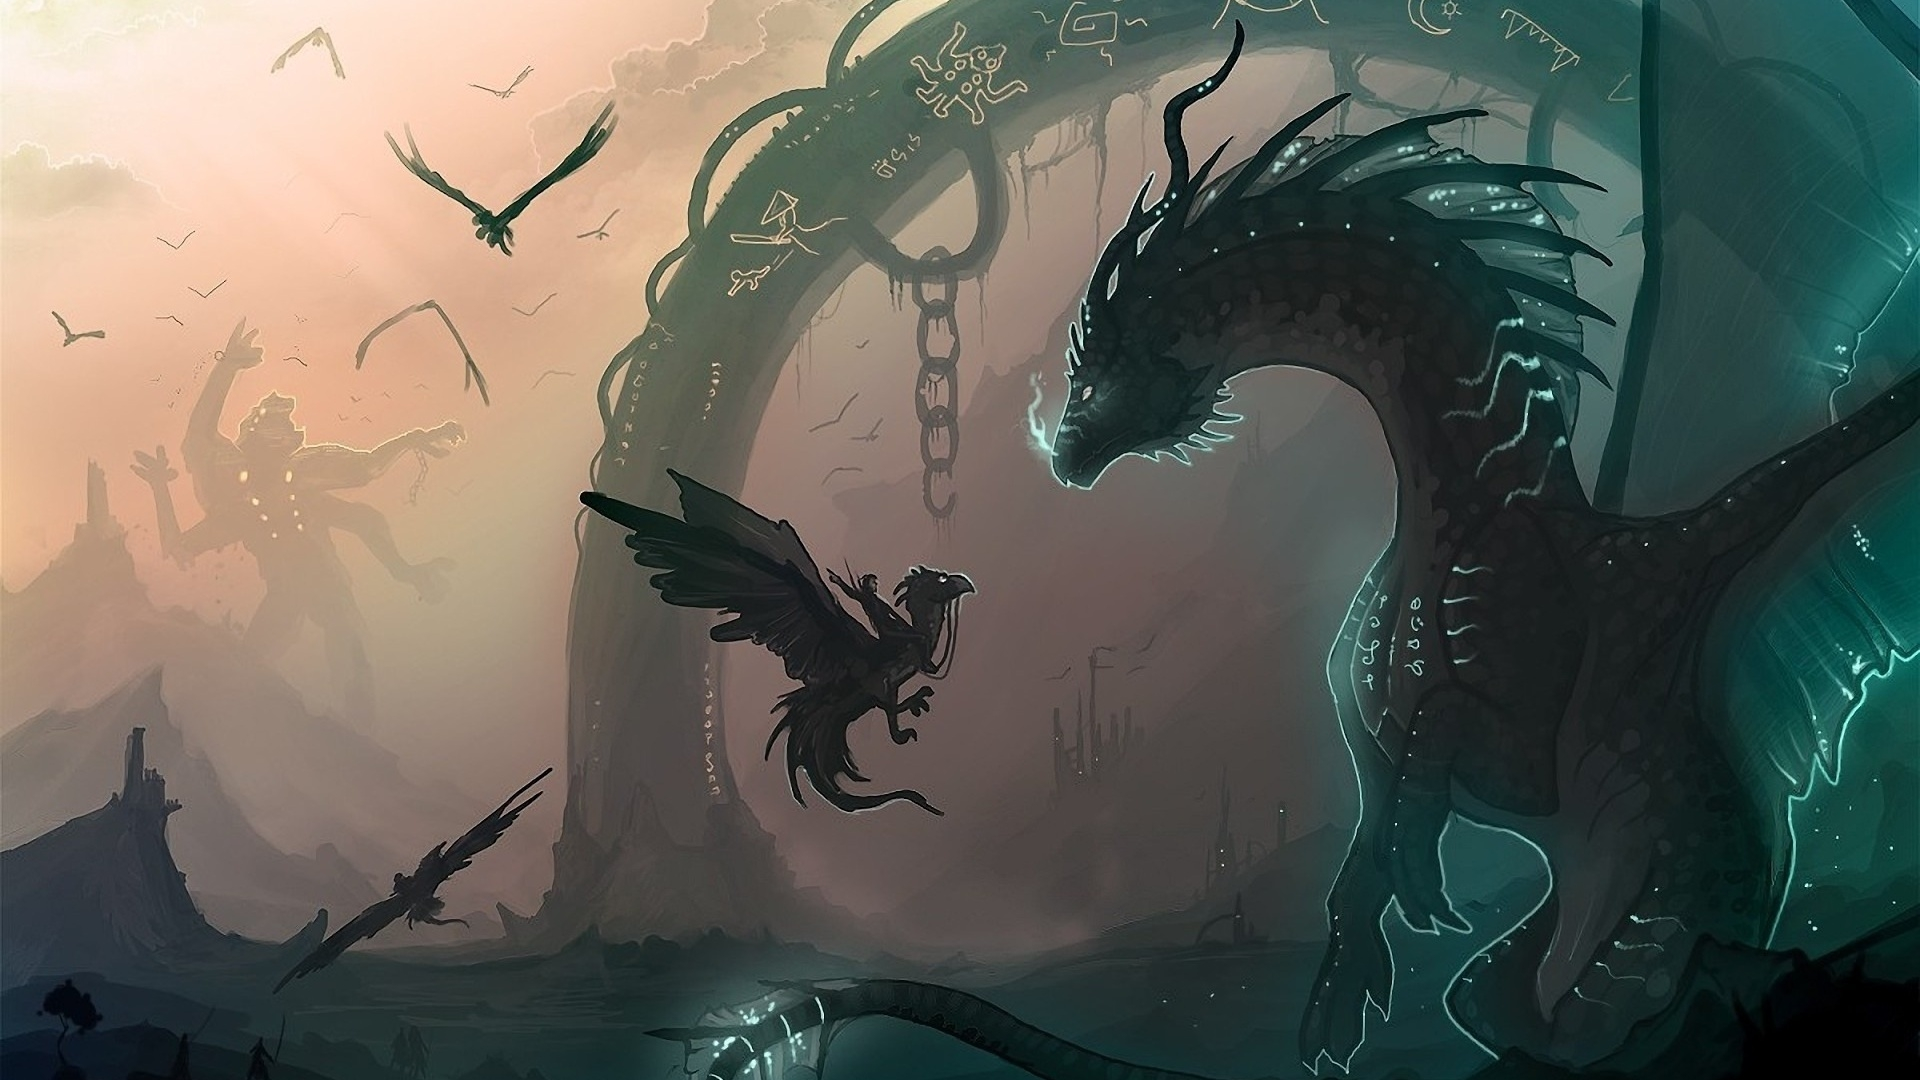 Get The Latest Dragon Chain Cub News Pictures And Videos Learn All About From Wallpapers4uorg Your Wallpaper Source